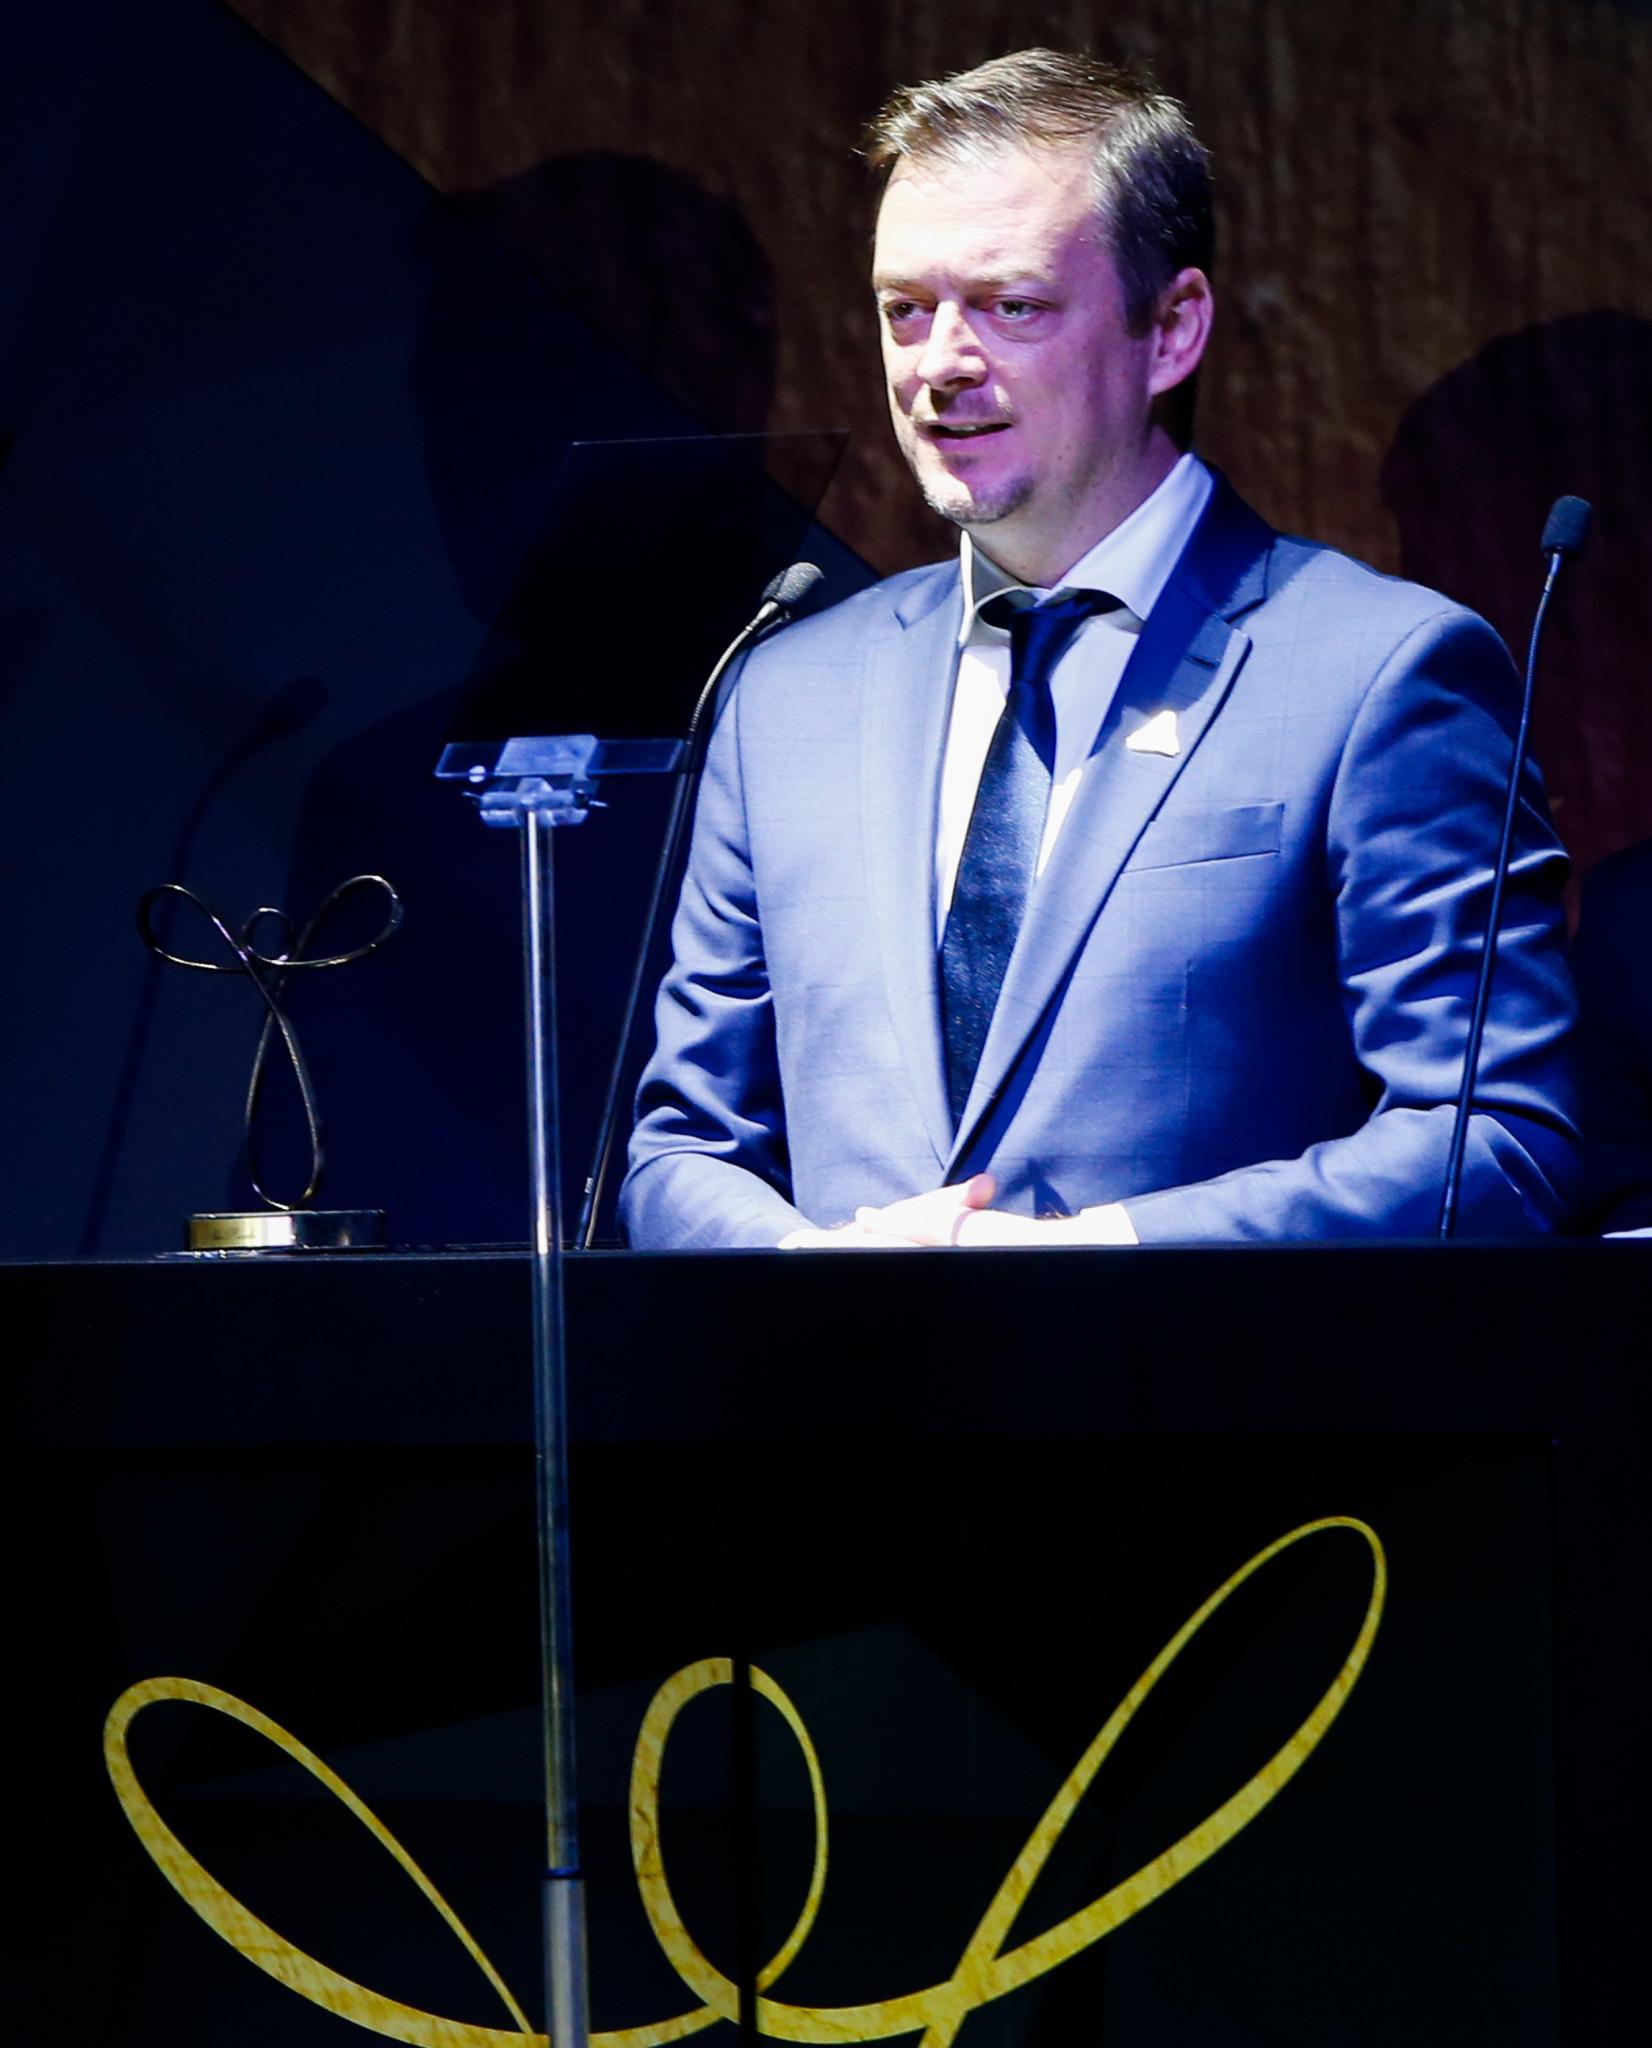 IPC President Andrew Parsons, pictured speaking in his native Brazil last year, said the decision to conditionally reinstate the Russian Paralympic Committee this year was